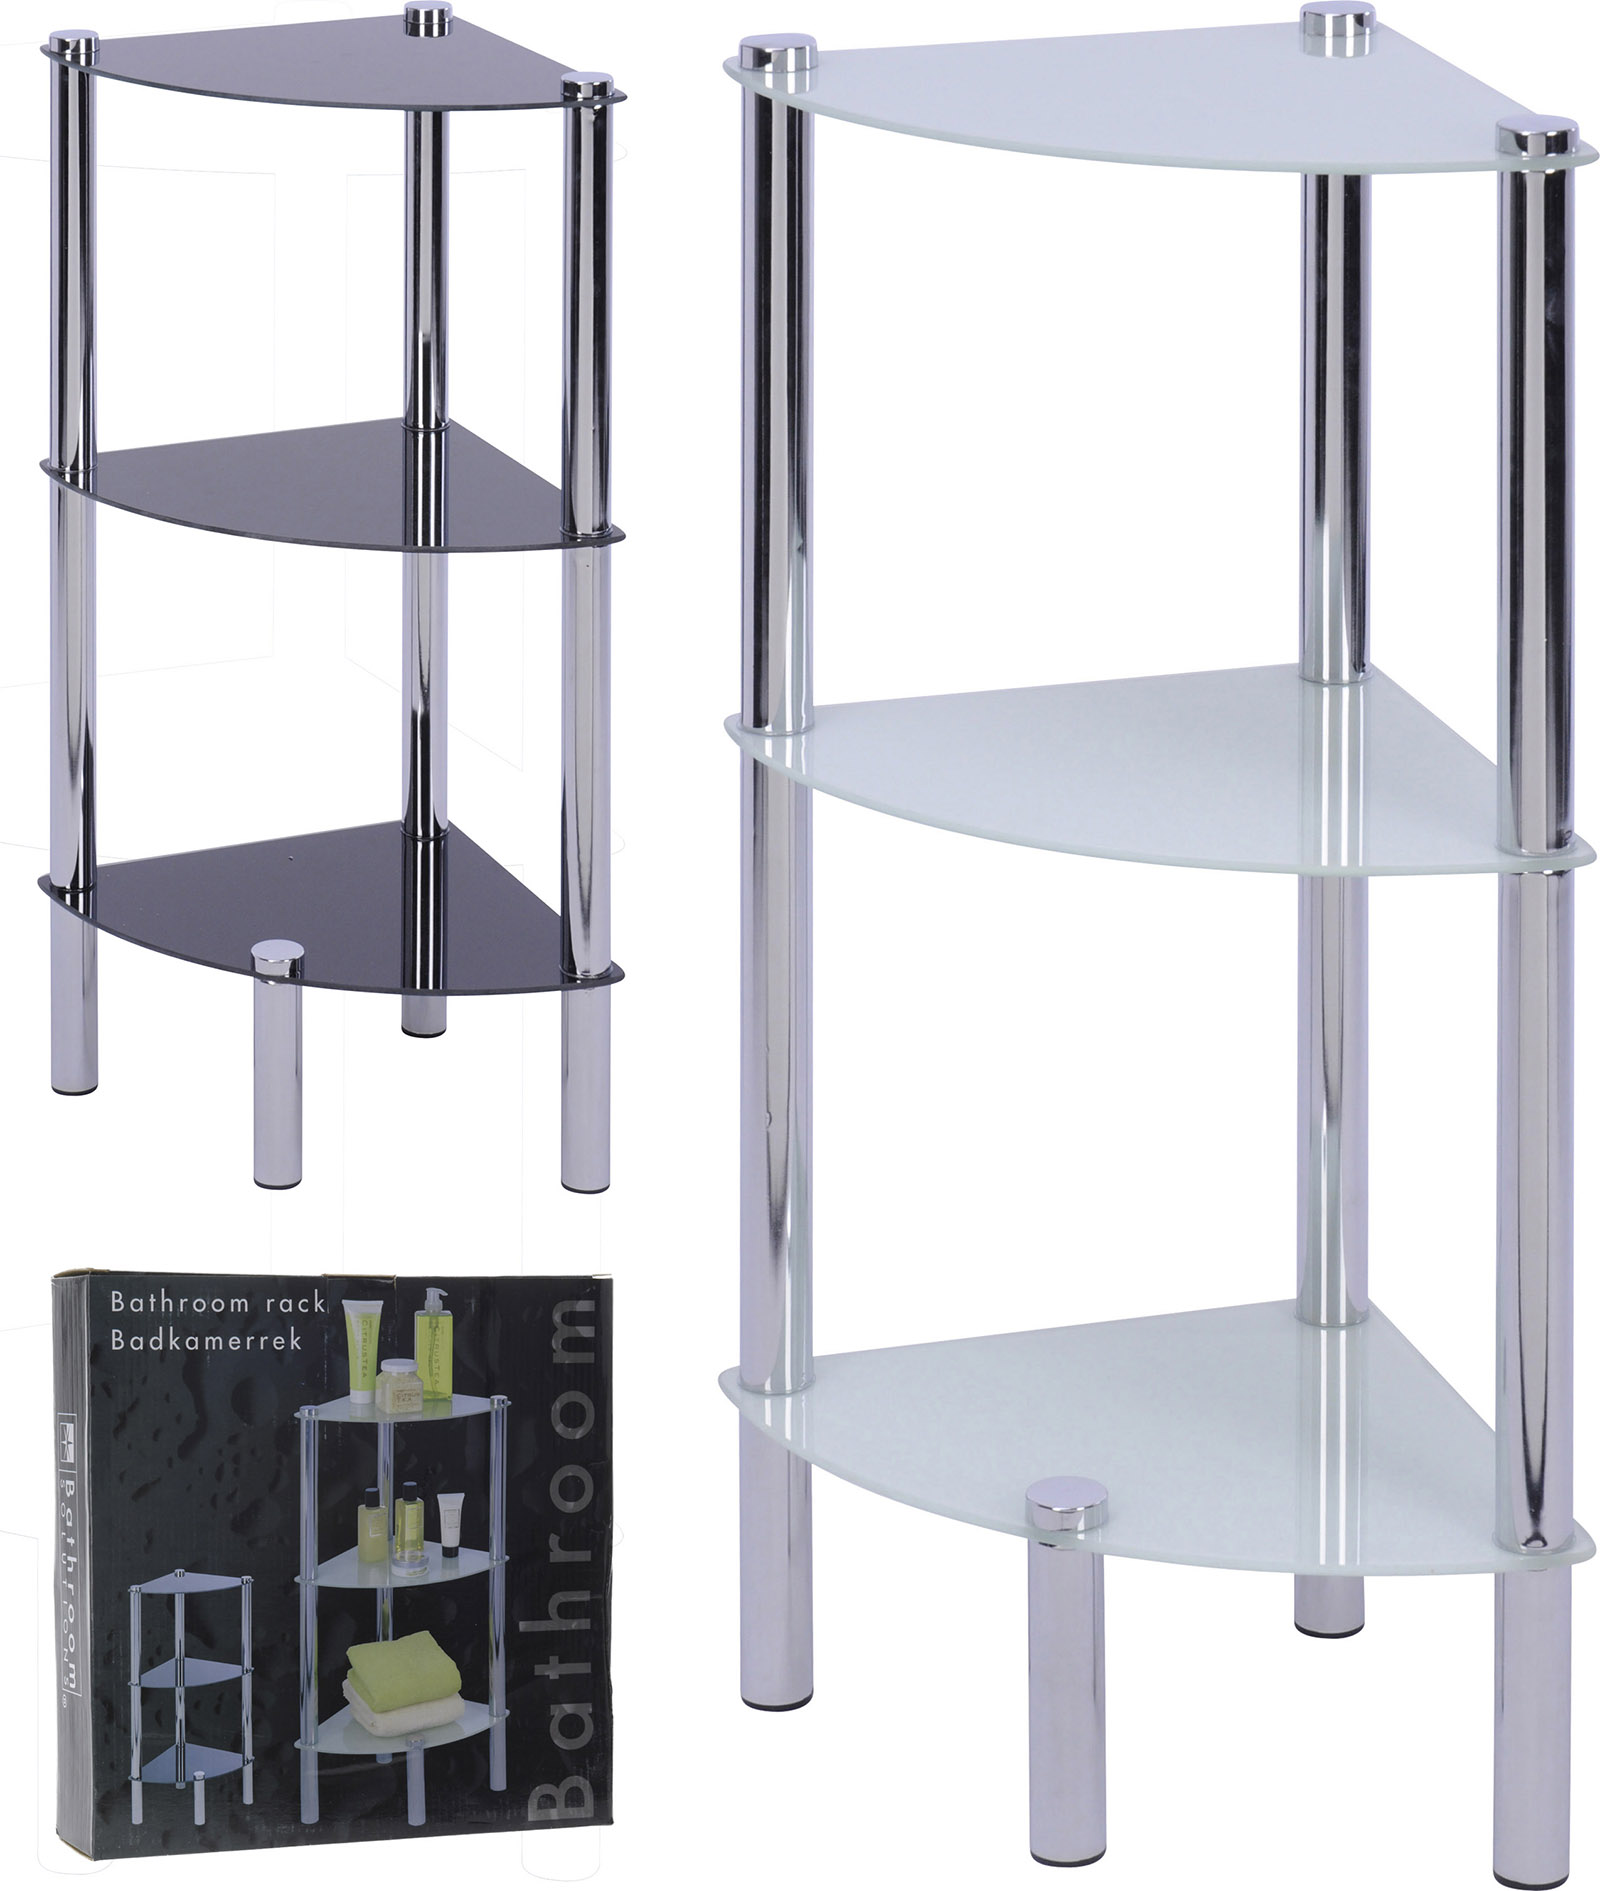 #6F774C  Shelf 3 Glass Shelves Glass Shelf Standing Shelving Corner Shelf Black with 1600x1891 px of Most Effective Corner Standing Shelf 18911600 wallpaper @ avoidforclosure.info